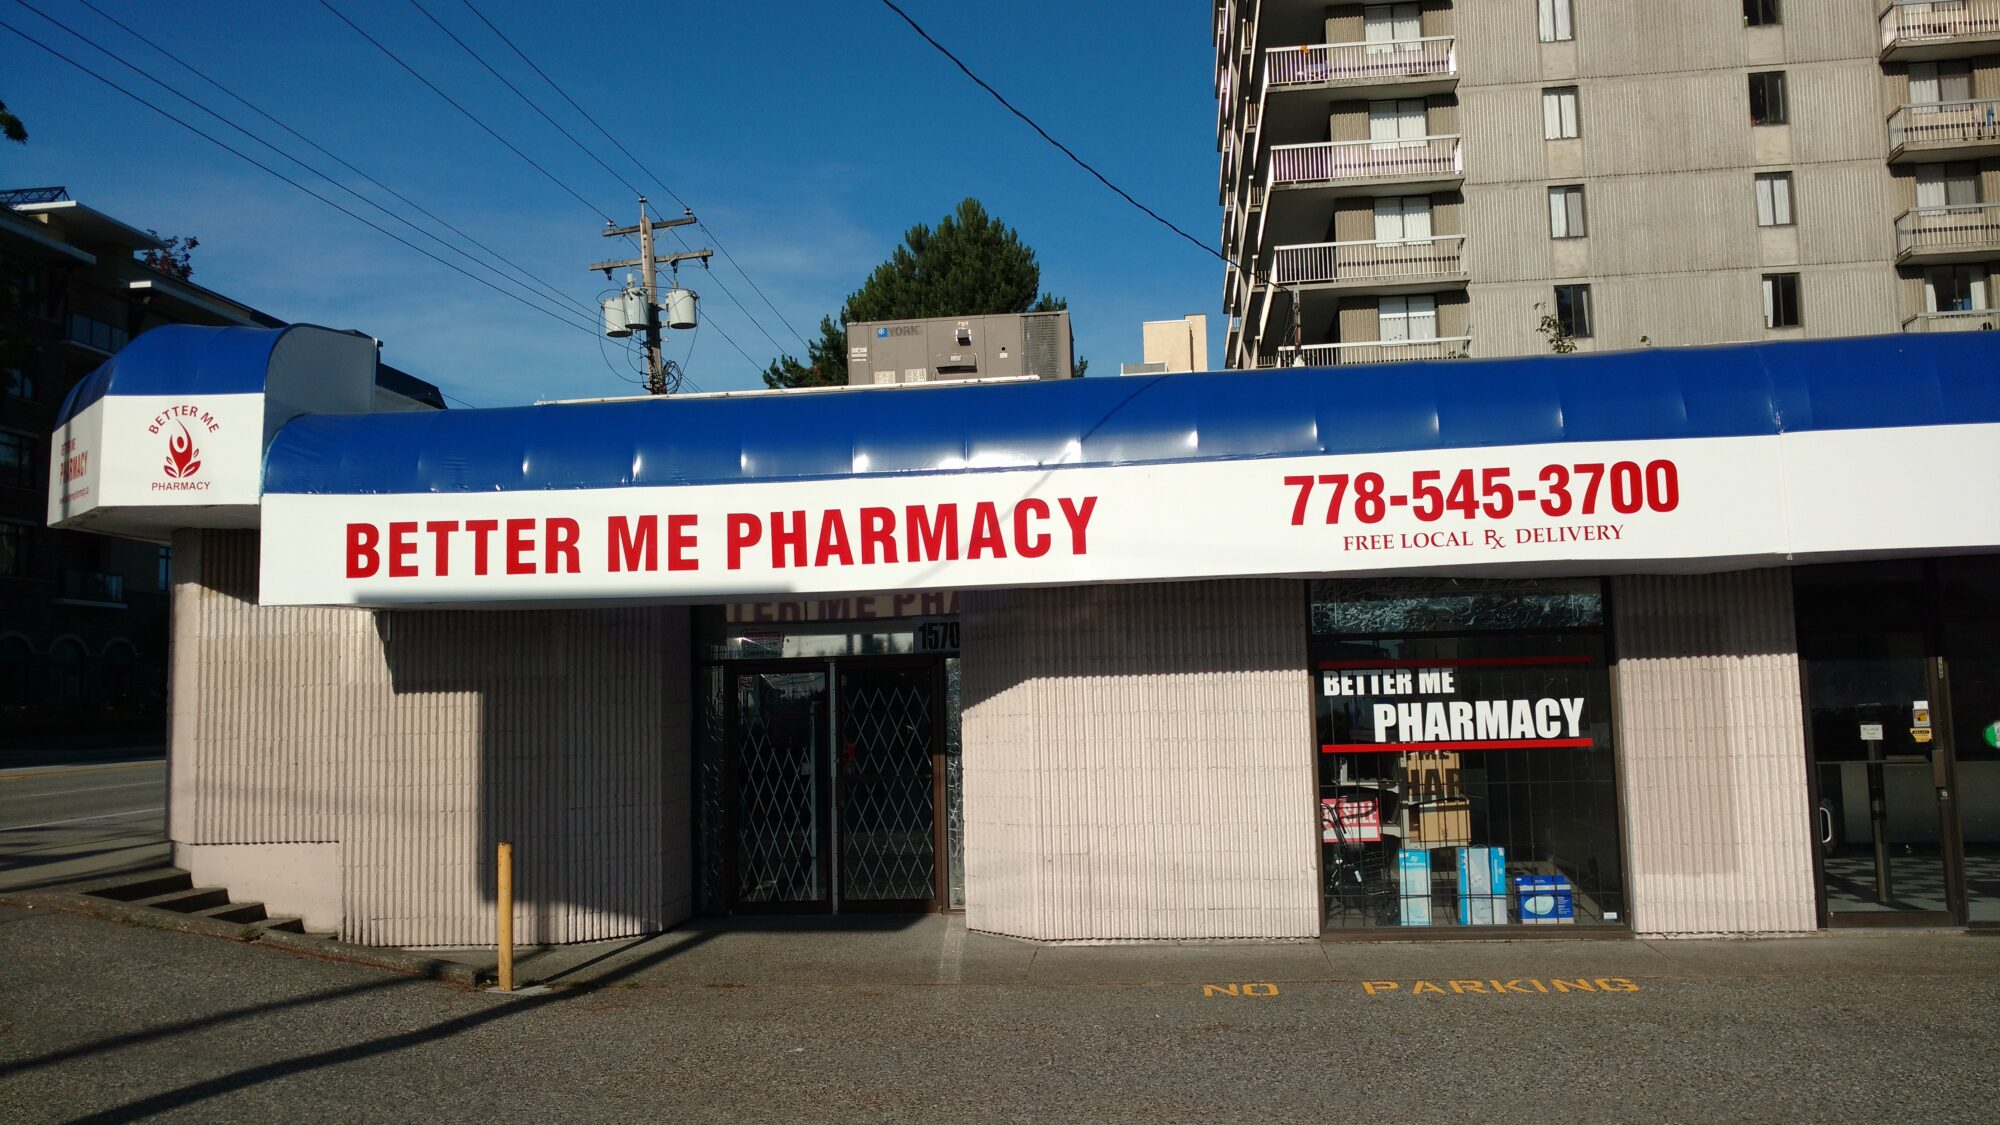 BETTER ME PHARMACY 778-545-3700